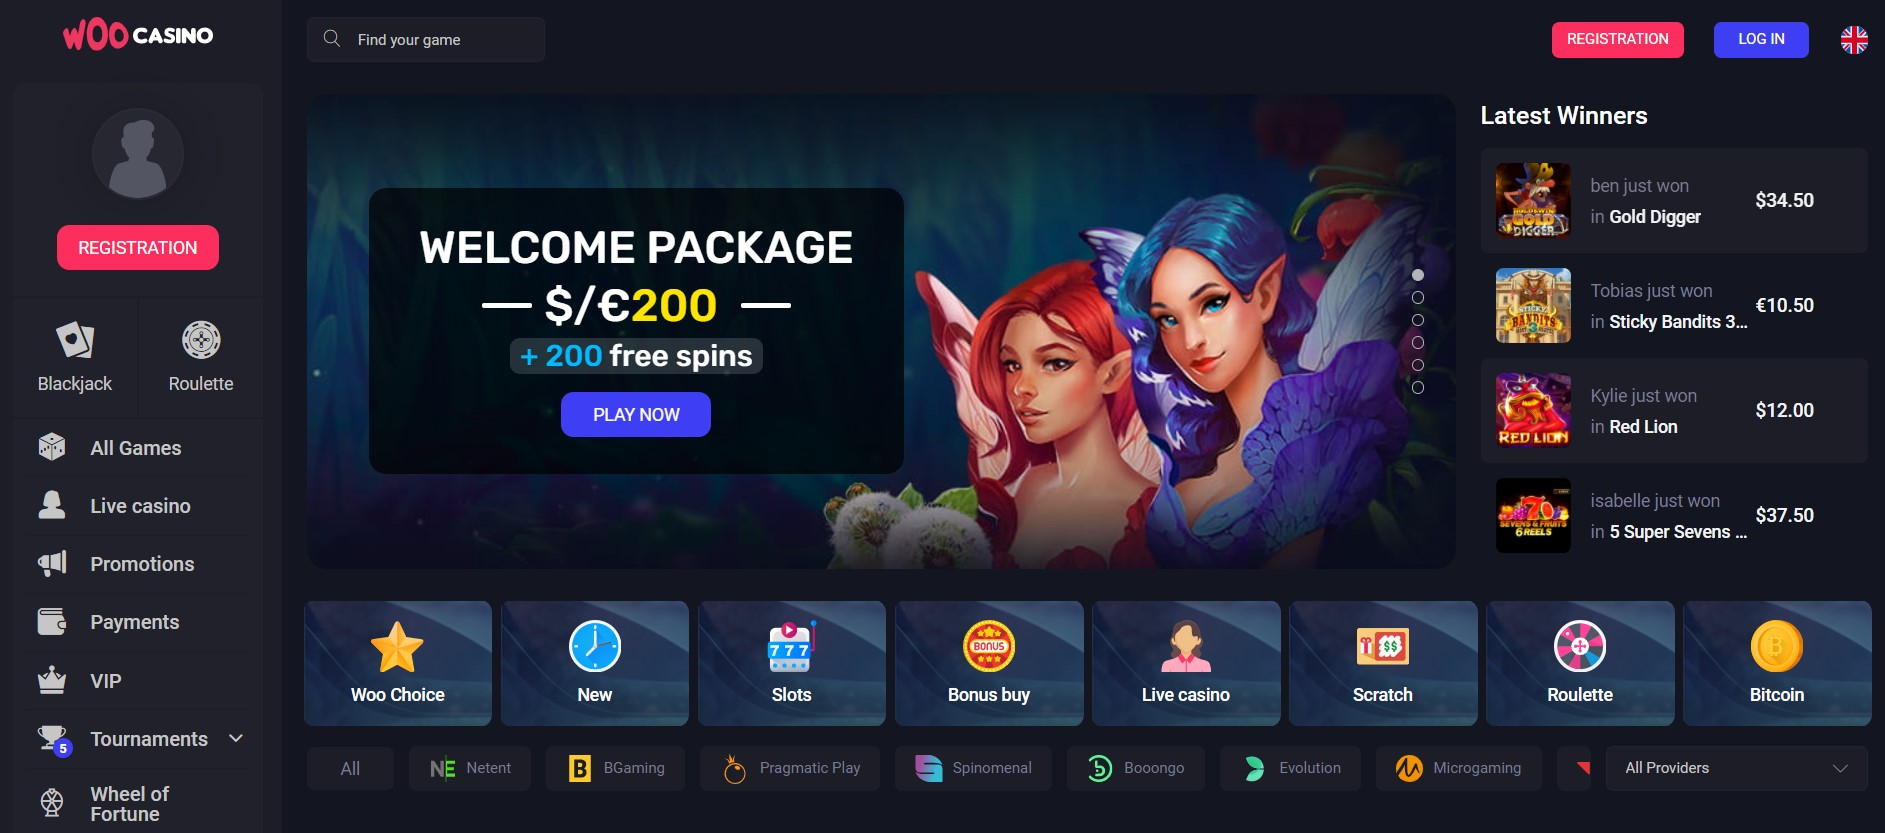 woocasino welcome package